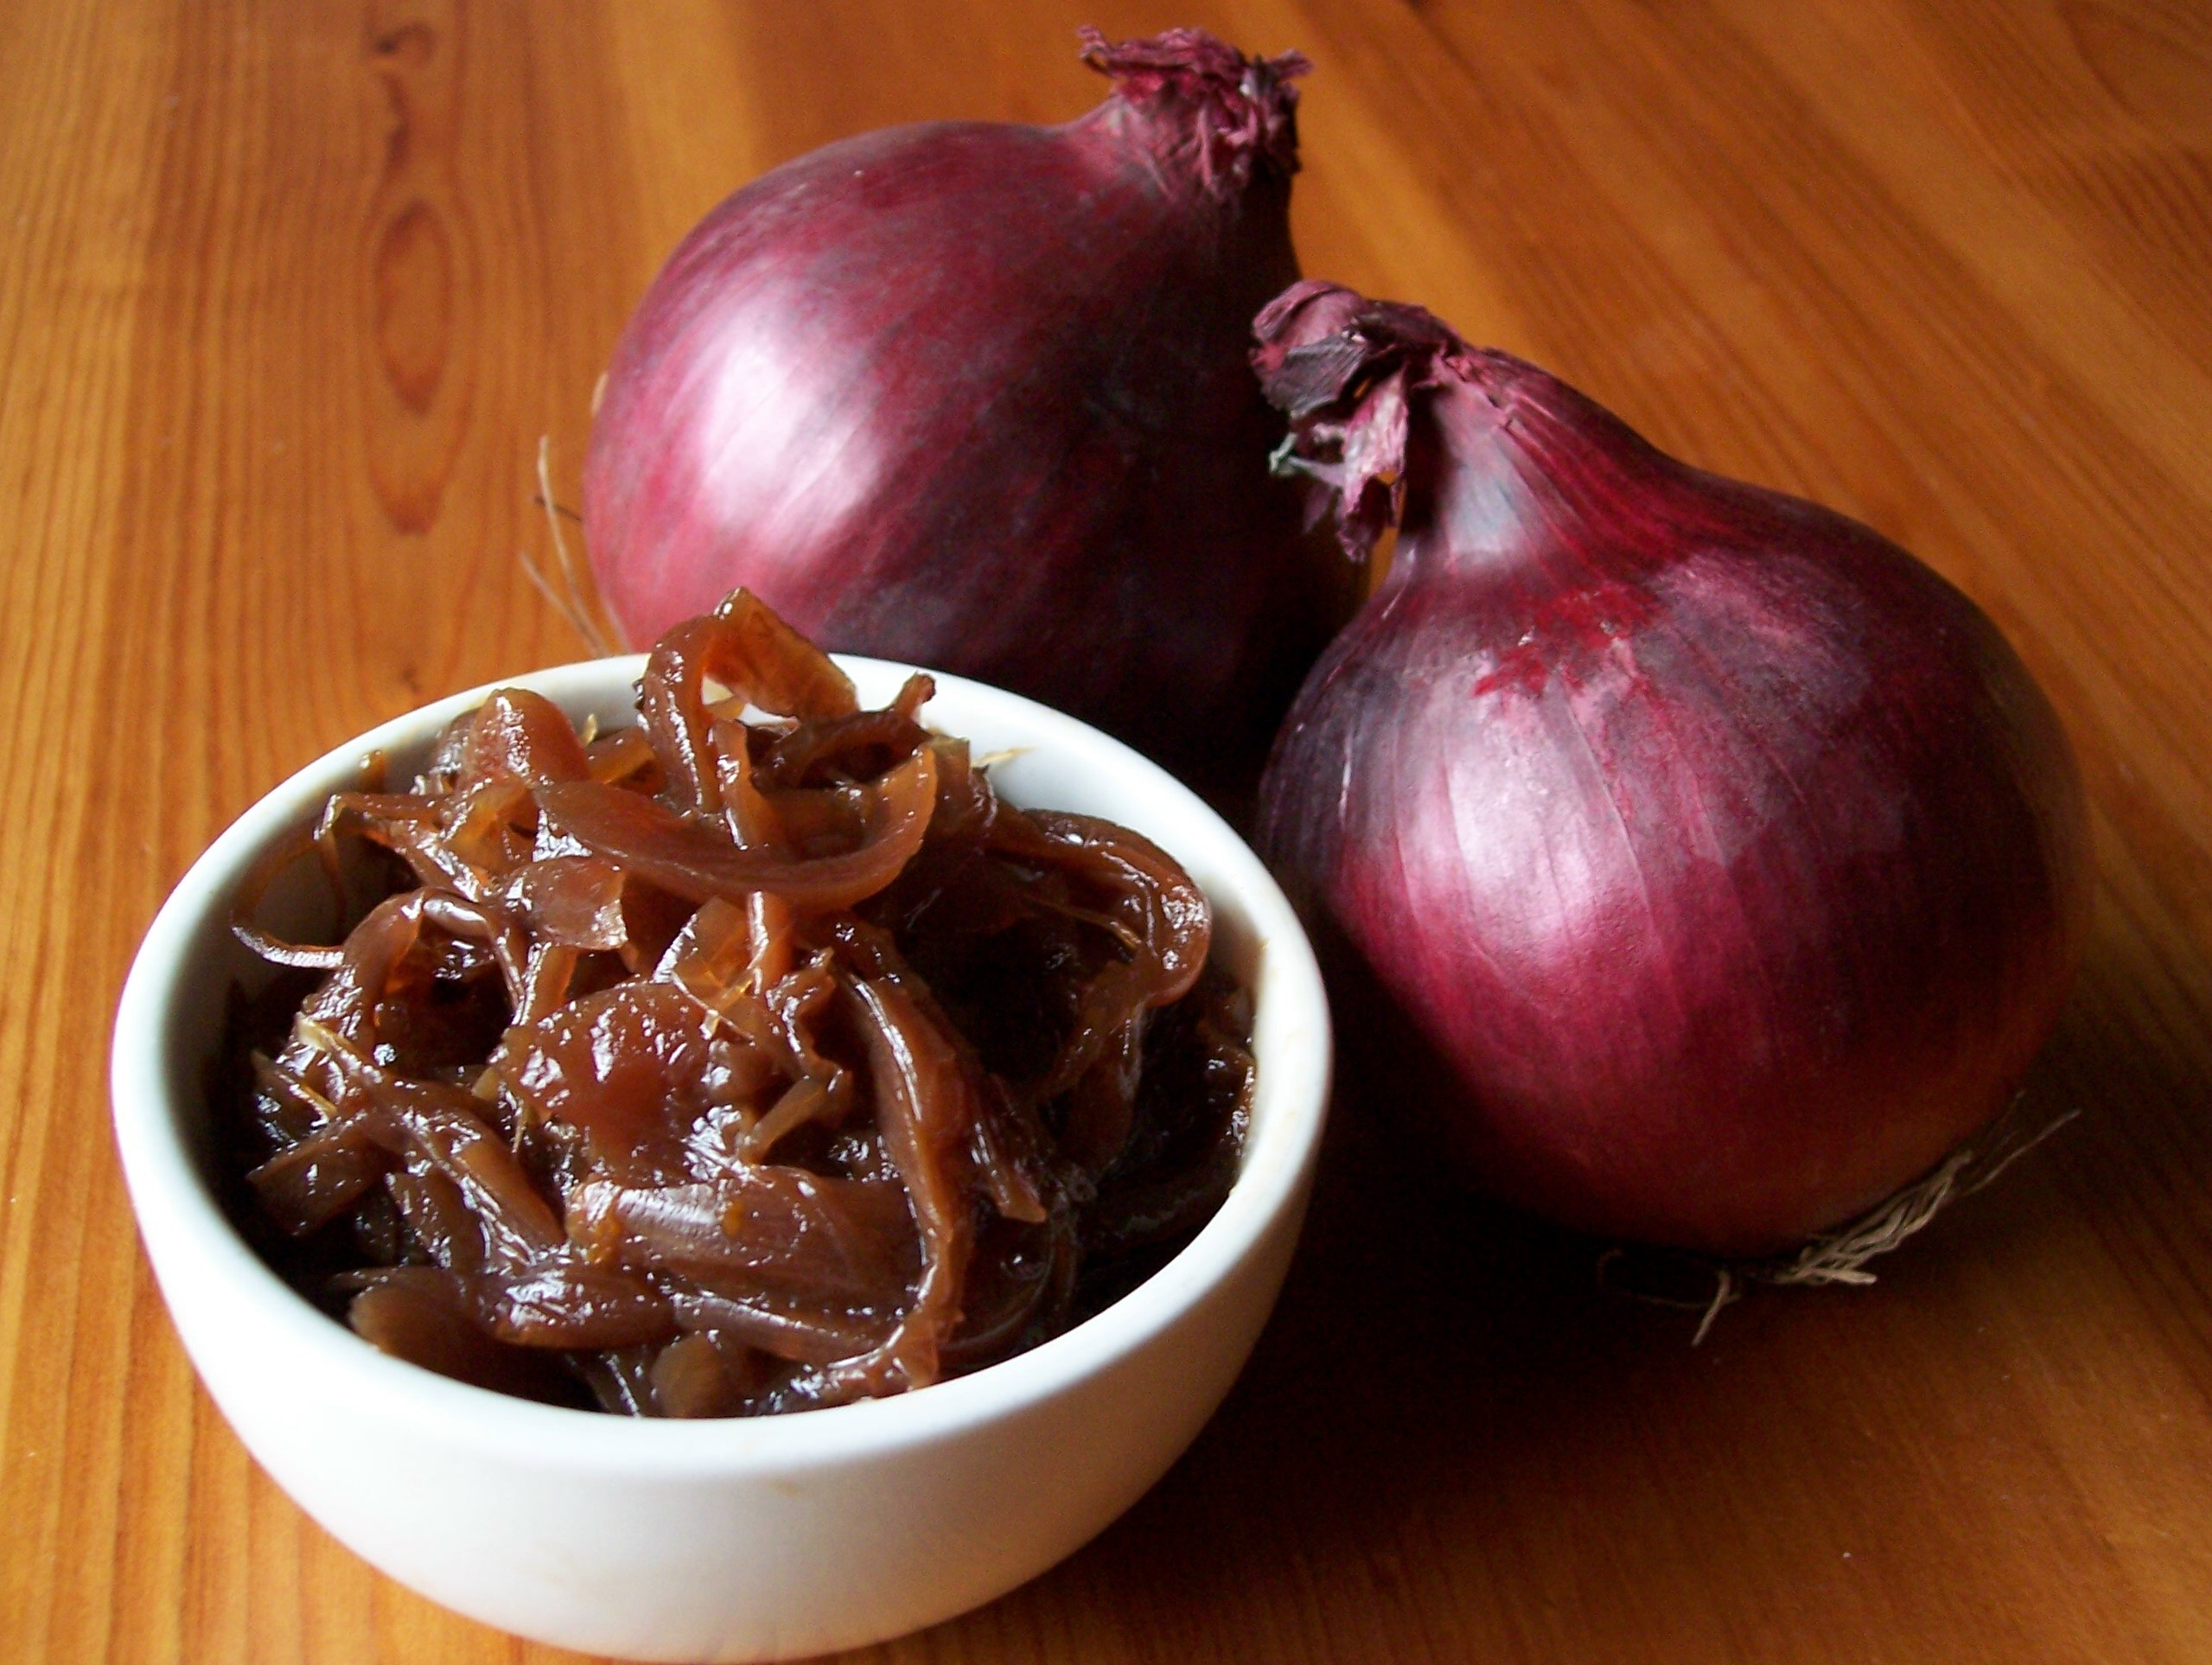 chutney apple chutney onion chutney an adaptable chutney hot chili